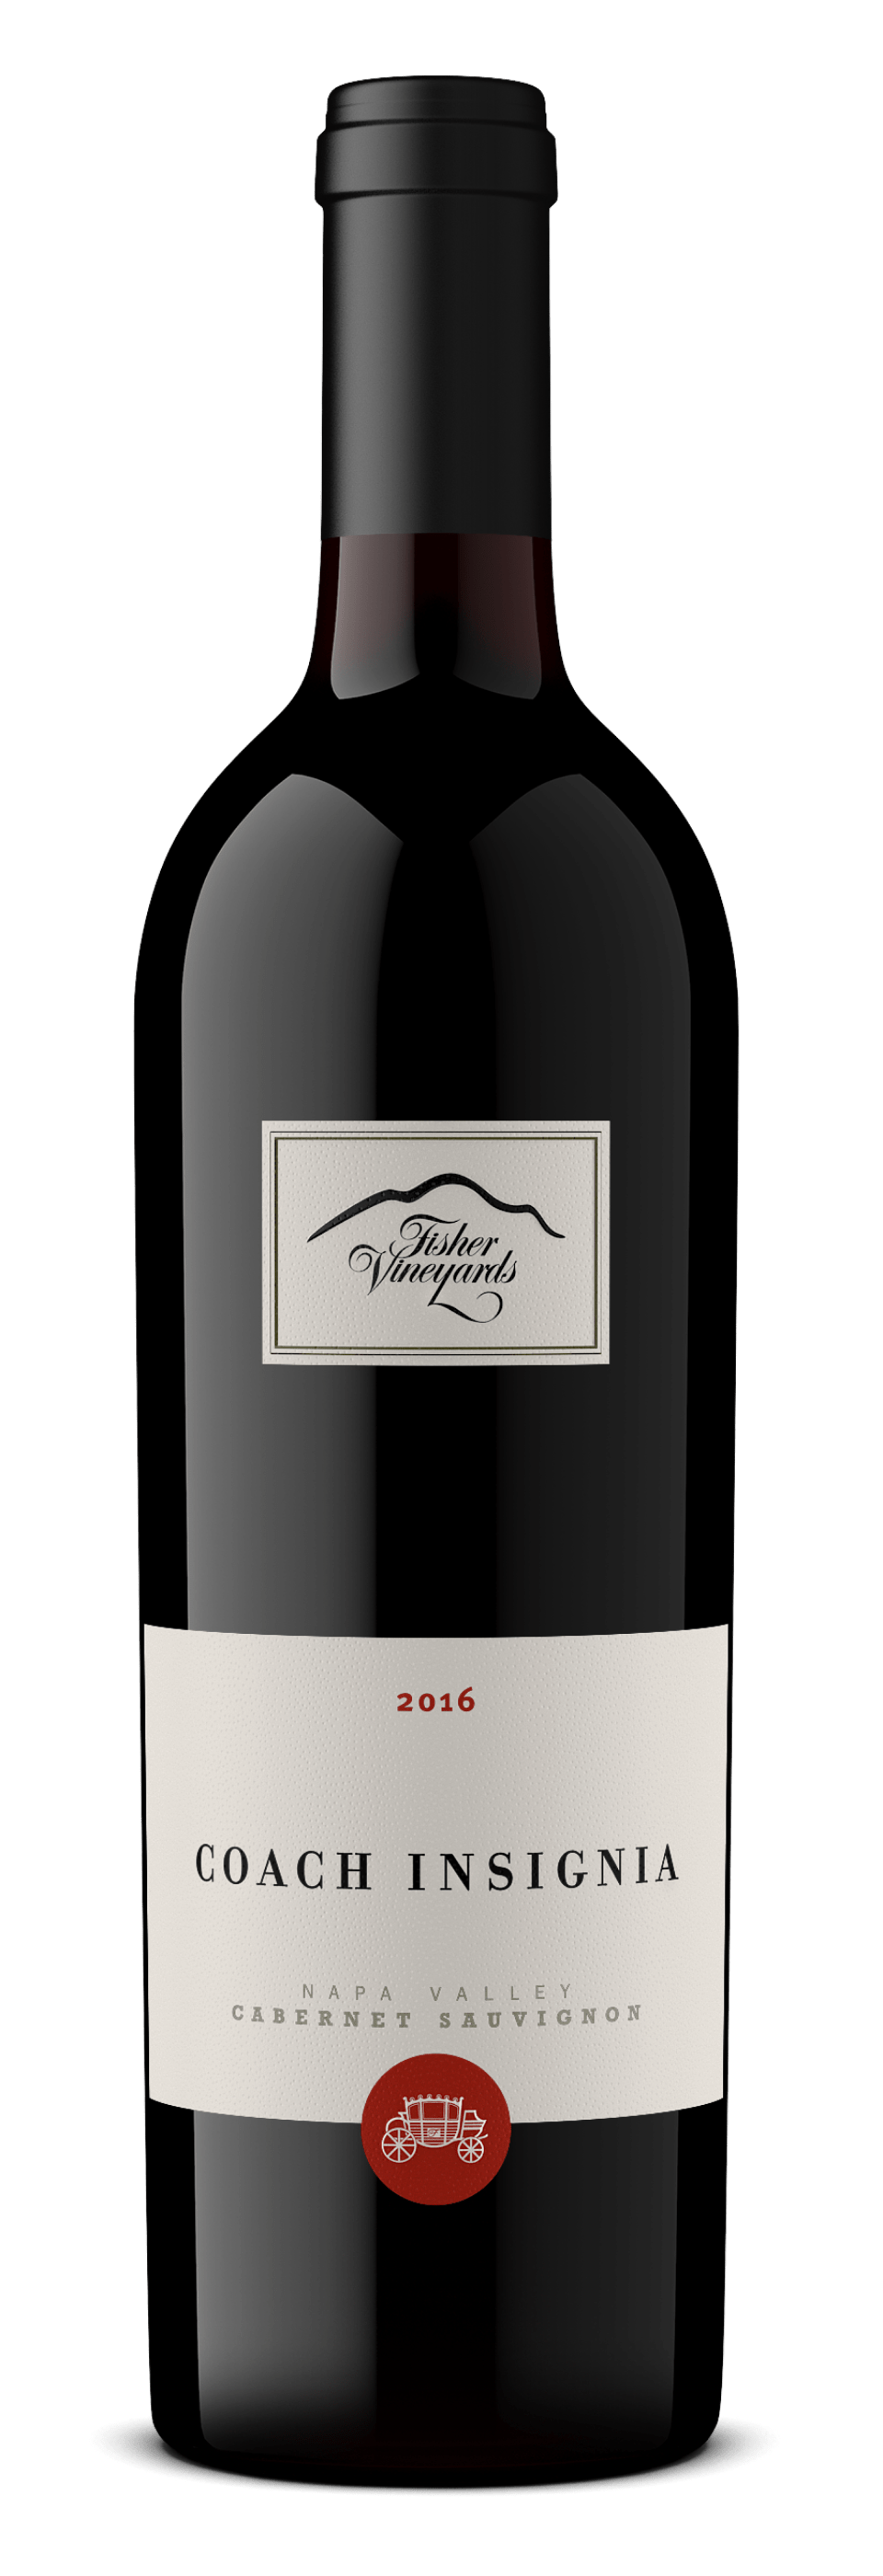 2016 Coach Insignia Napa Valley Cabernet Sauvignon bottle